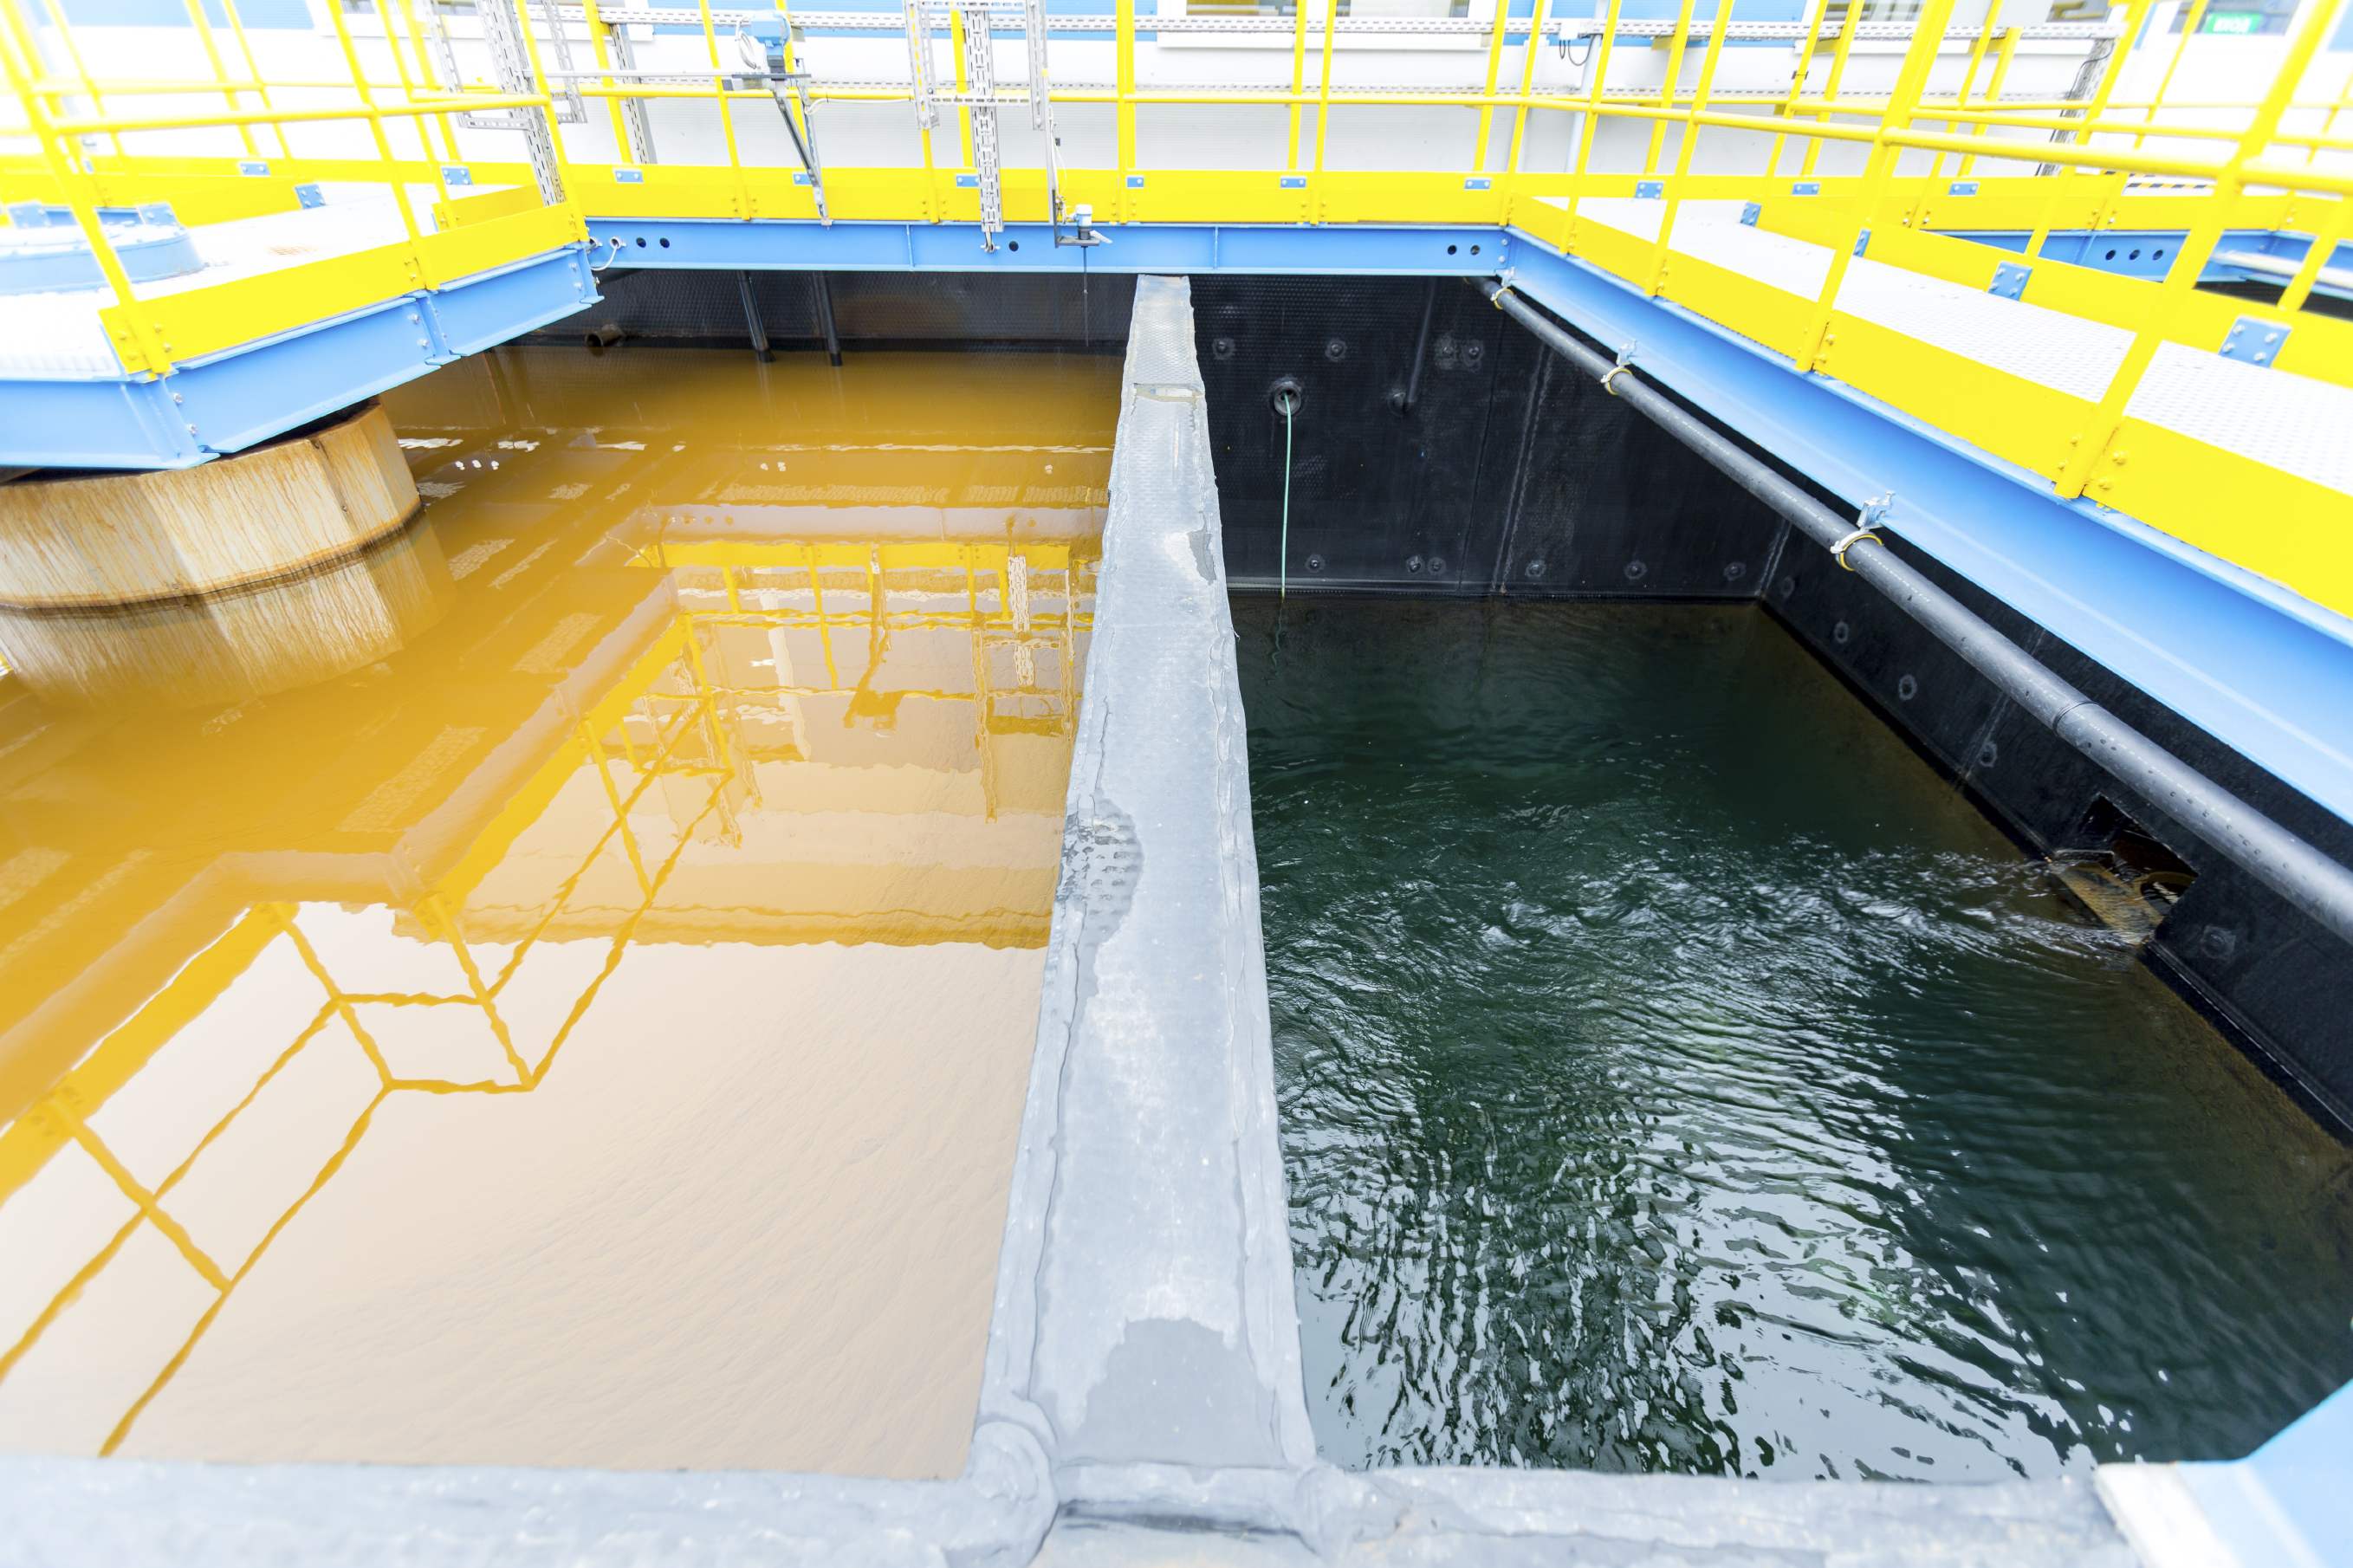 Waste water clarification stage